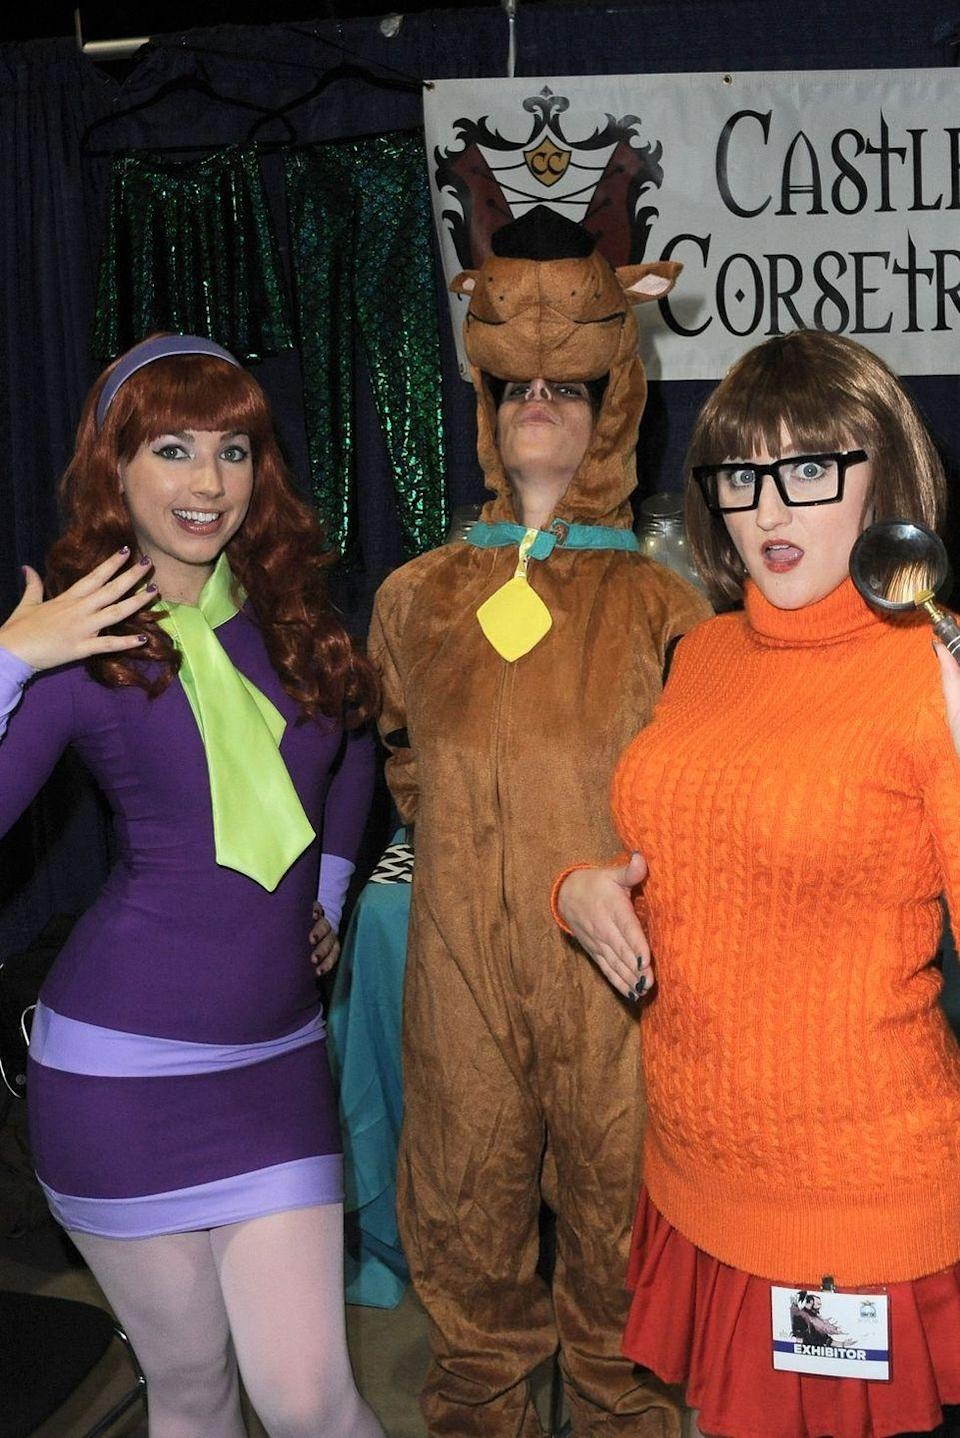 """<p>Even if you don't feel like solving any mysteries, you'll totally look the part when you dress up as Daphne, Scooby, Velma, or any other members of the <em>Scooby Doo</em> crew.</p><p><a class=""""link rapid-noclick-resp"""" href=""""https://www.amazon.com/Halloween-Bodycon-Sleeve-Costume-Cosplay/dp/B07TZM4BDN?tag=syn-yahoo-20&ascsubtag=%5Bartid%7C10070.g.23122163%5Bsrc%7Cyahoo-us"""" rel=""""nofollow noopener"""" target=""""_blank"""" data-ylk=""""slk:SHOP PURPLE DRESS"""">SHOP PURPLE DRESS</a></p>"""